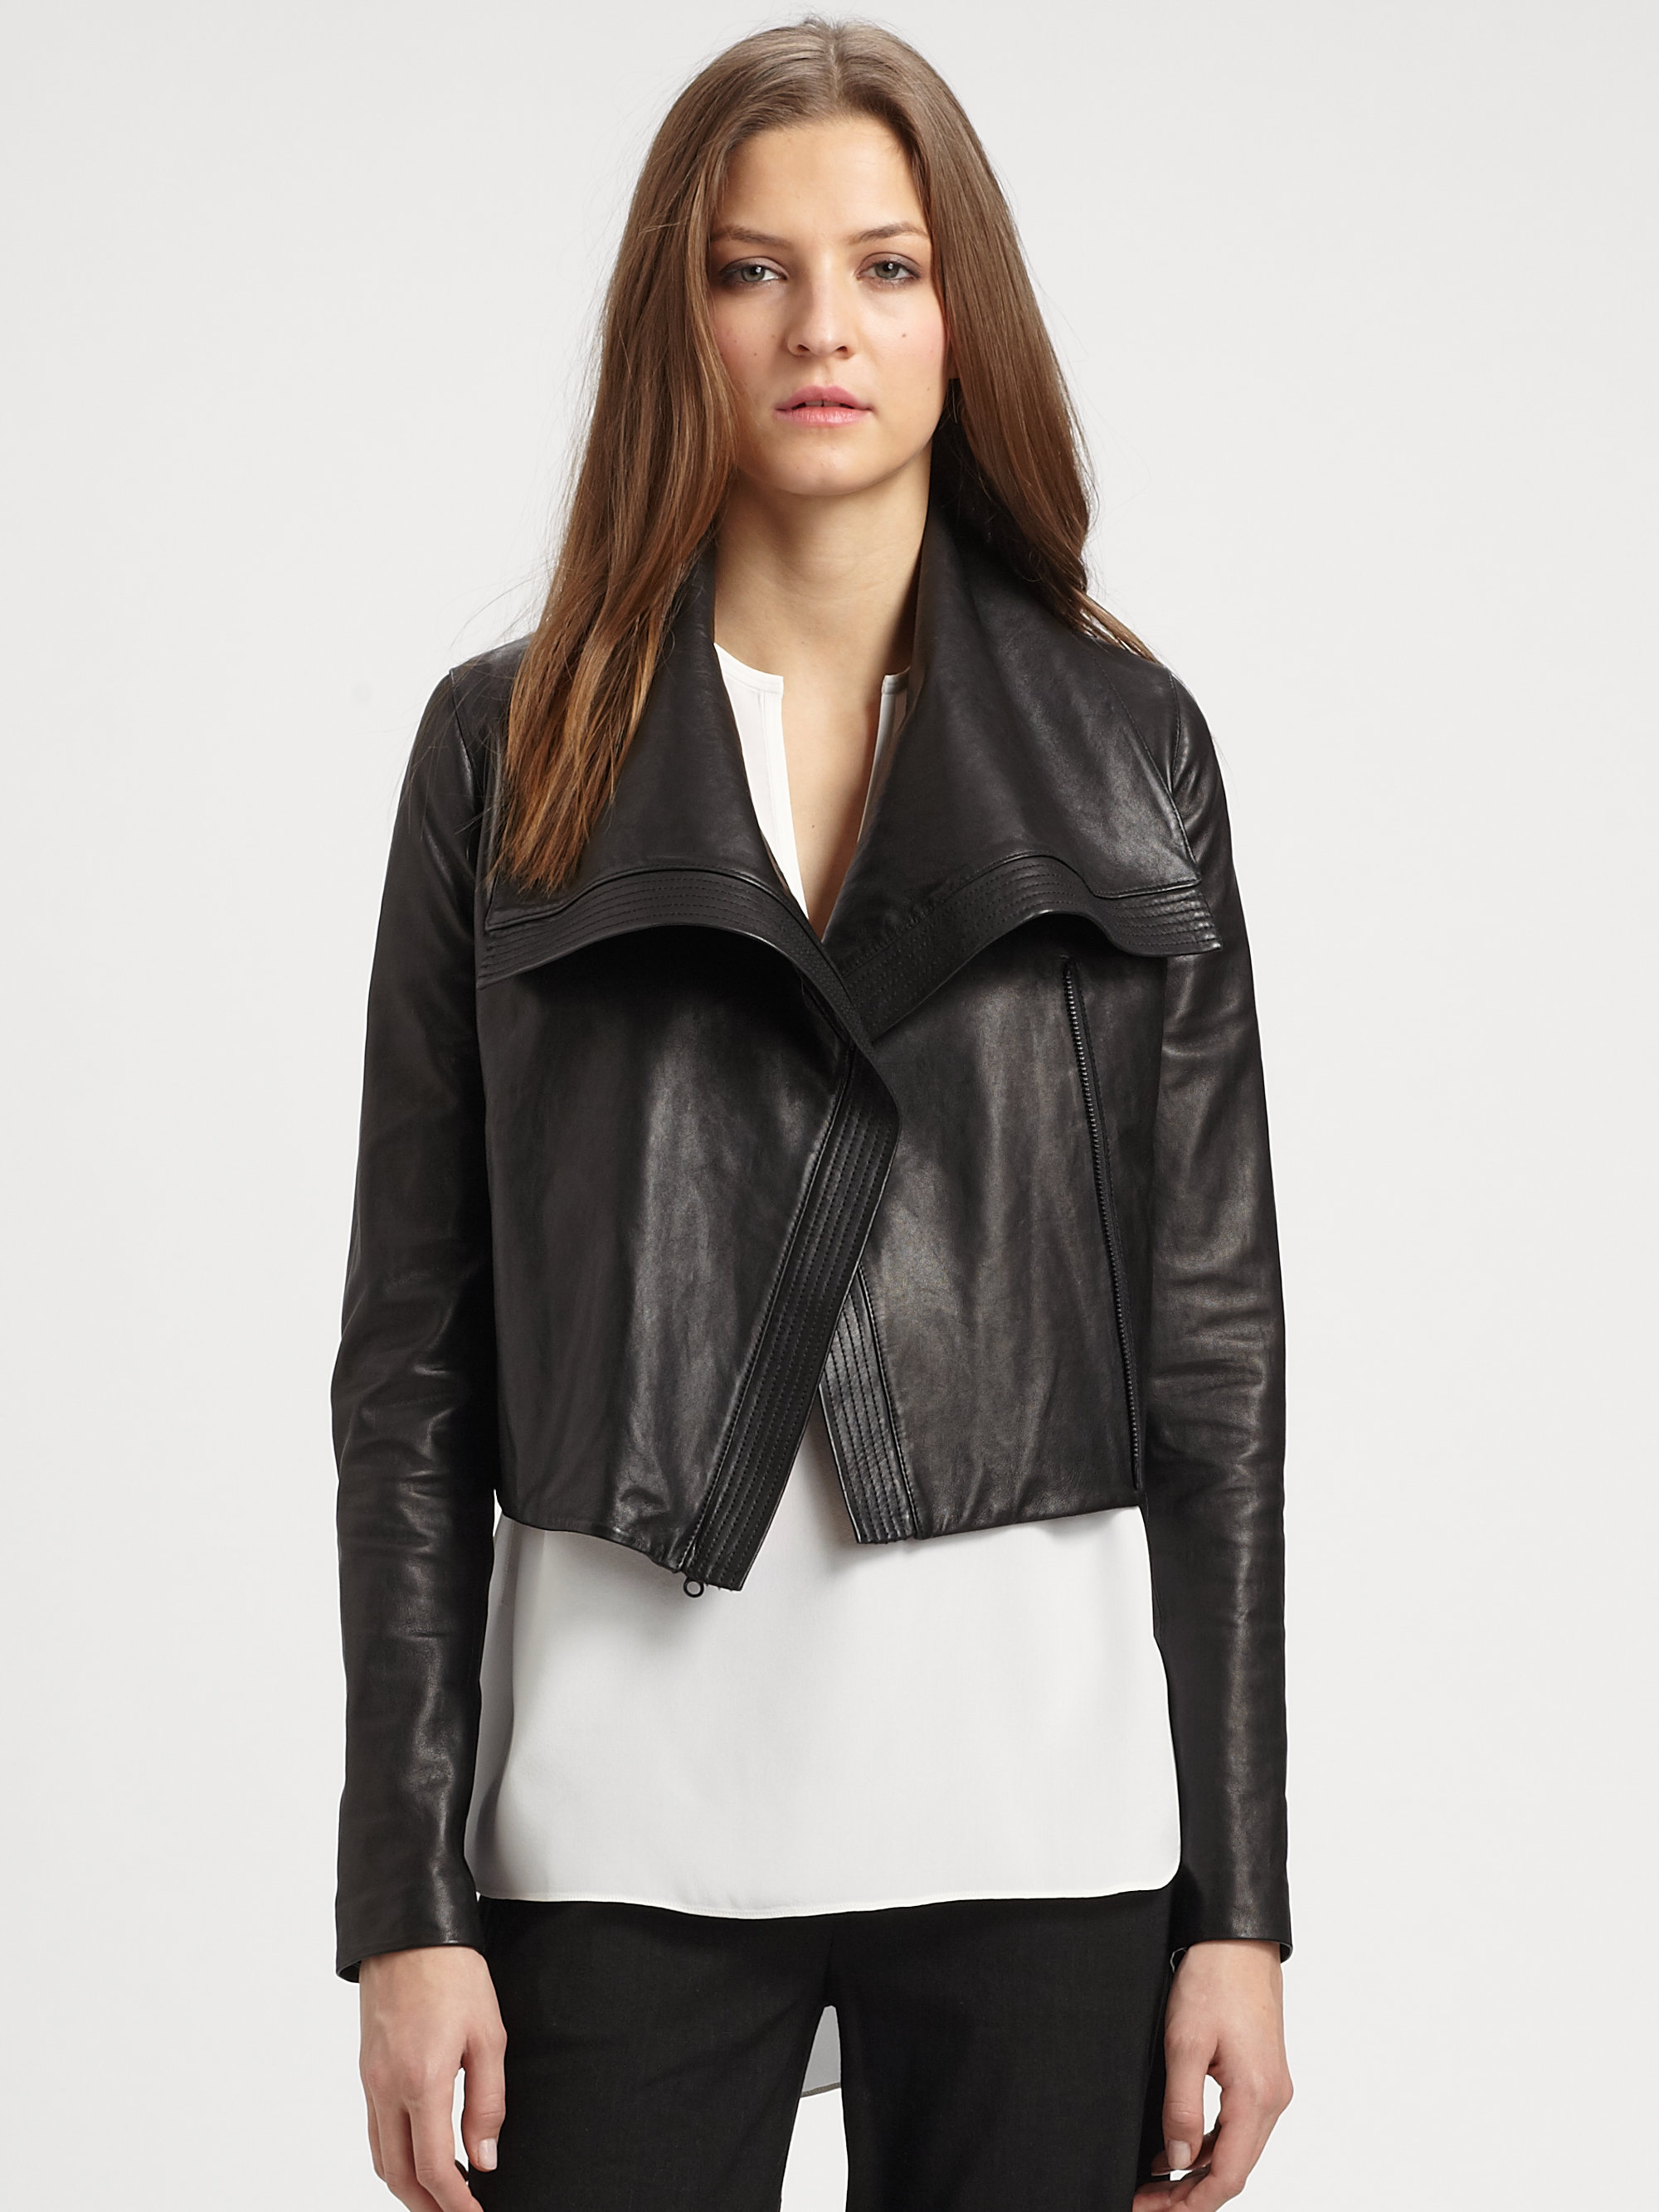 MICHAEL Michael Kors - Cropped Leather Jacket fefdinterested.gq, offering the modern energy, style and personalized service of Saks Fifth Avenue stores, in an enhanced, easy-to-navigate shopping experience.